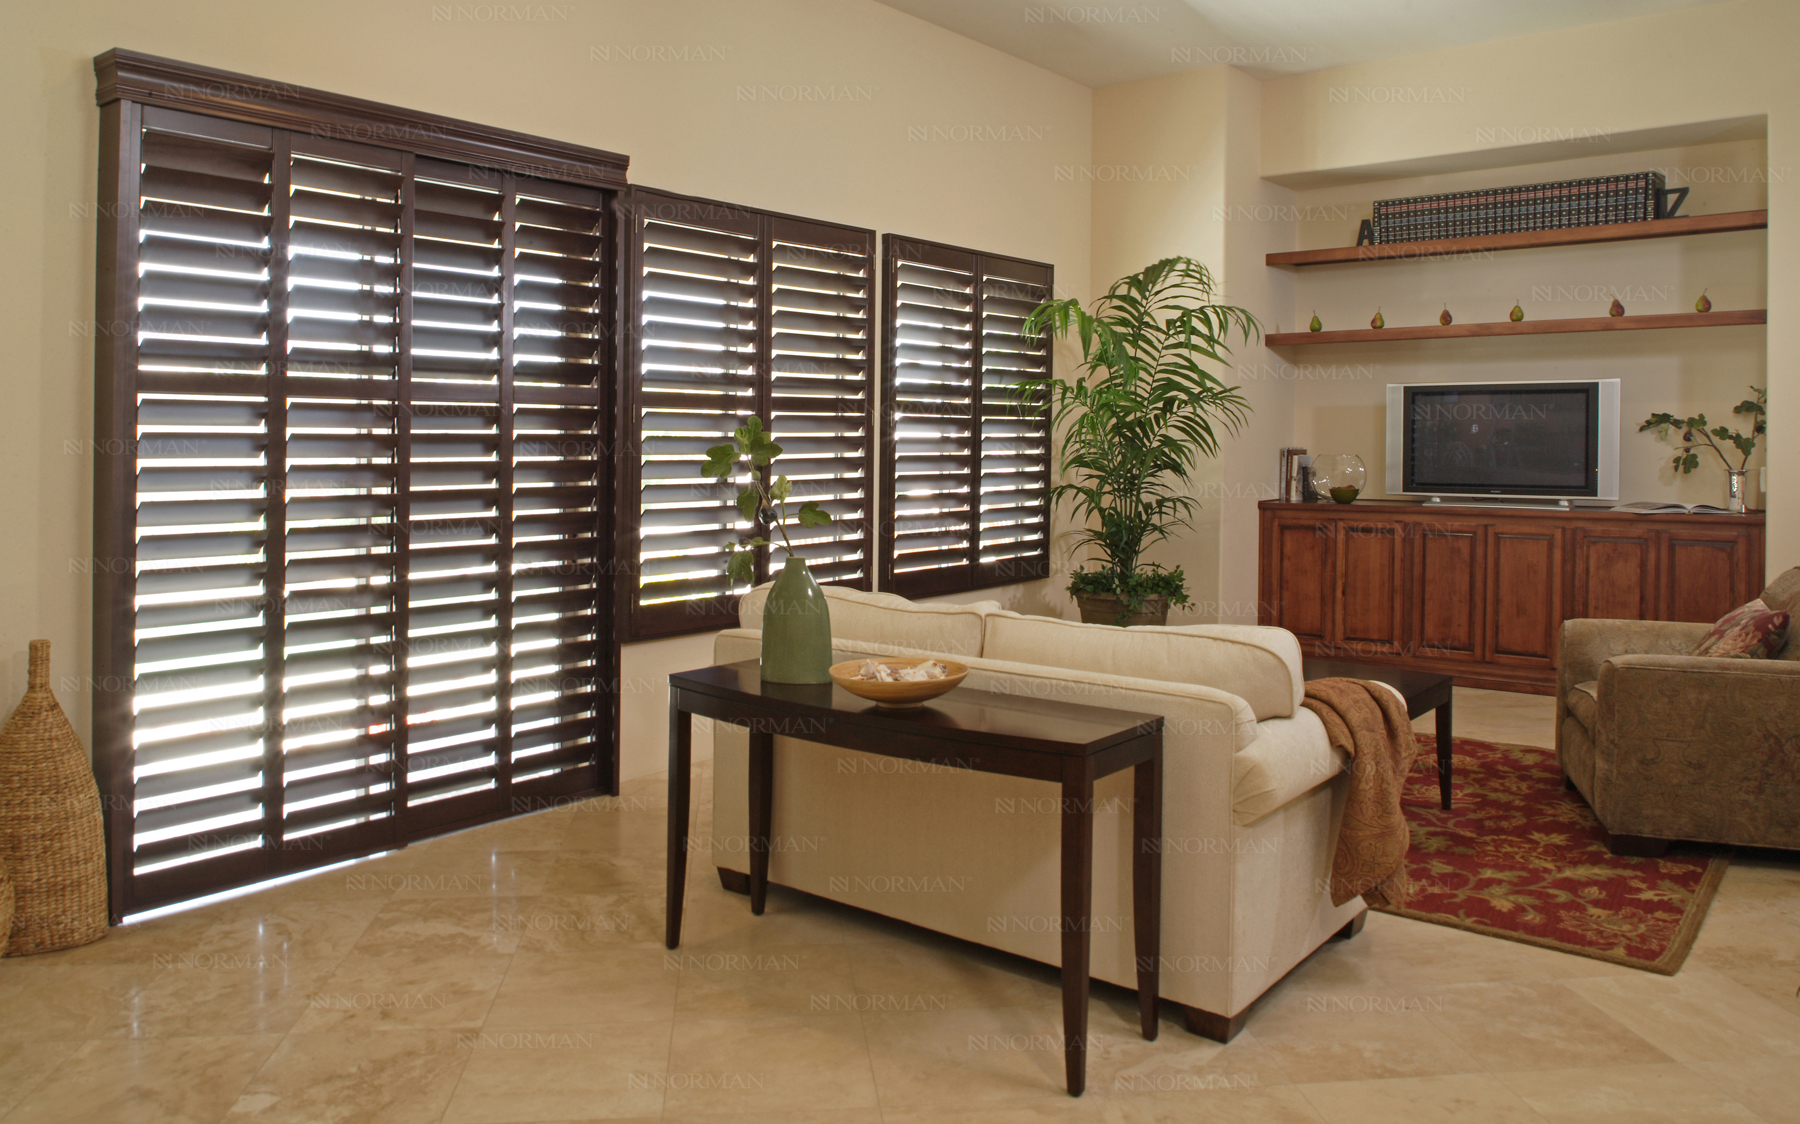 Villa blind and shutter home window coverings shades for Should plantation shutters match trim